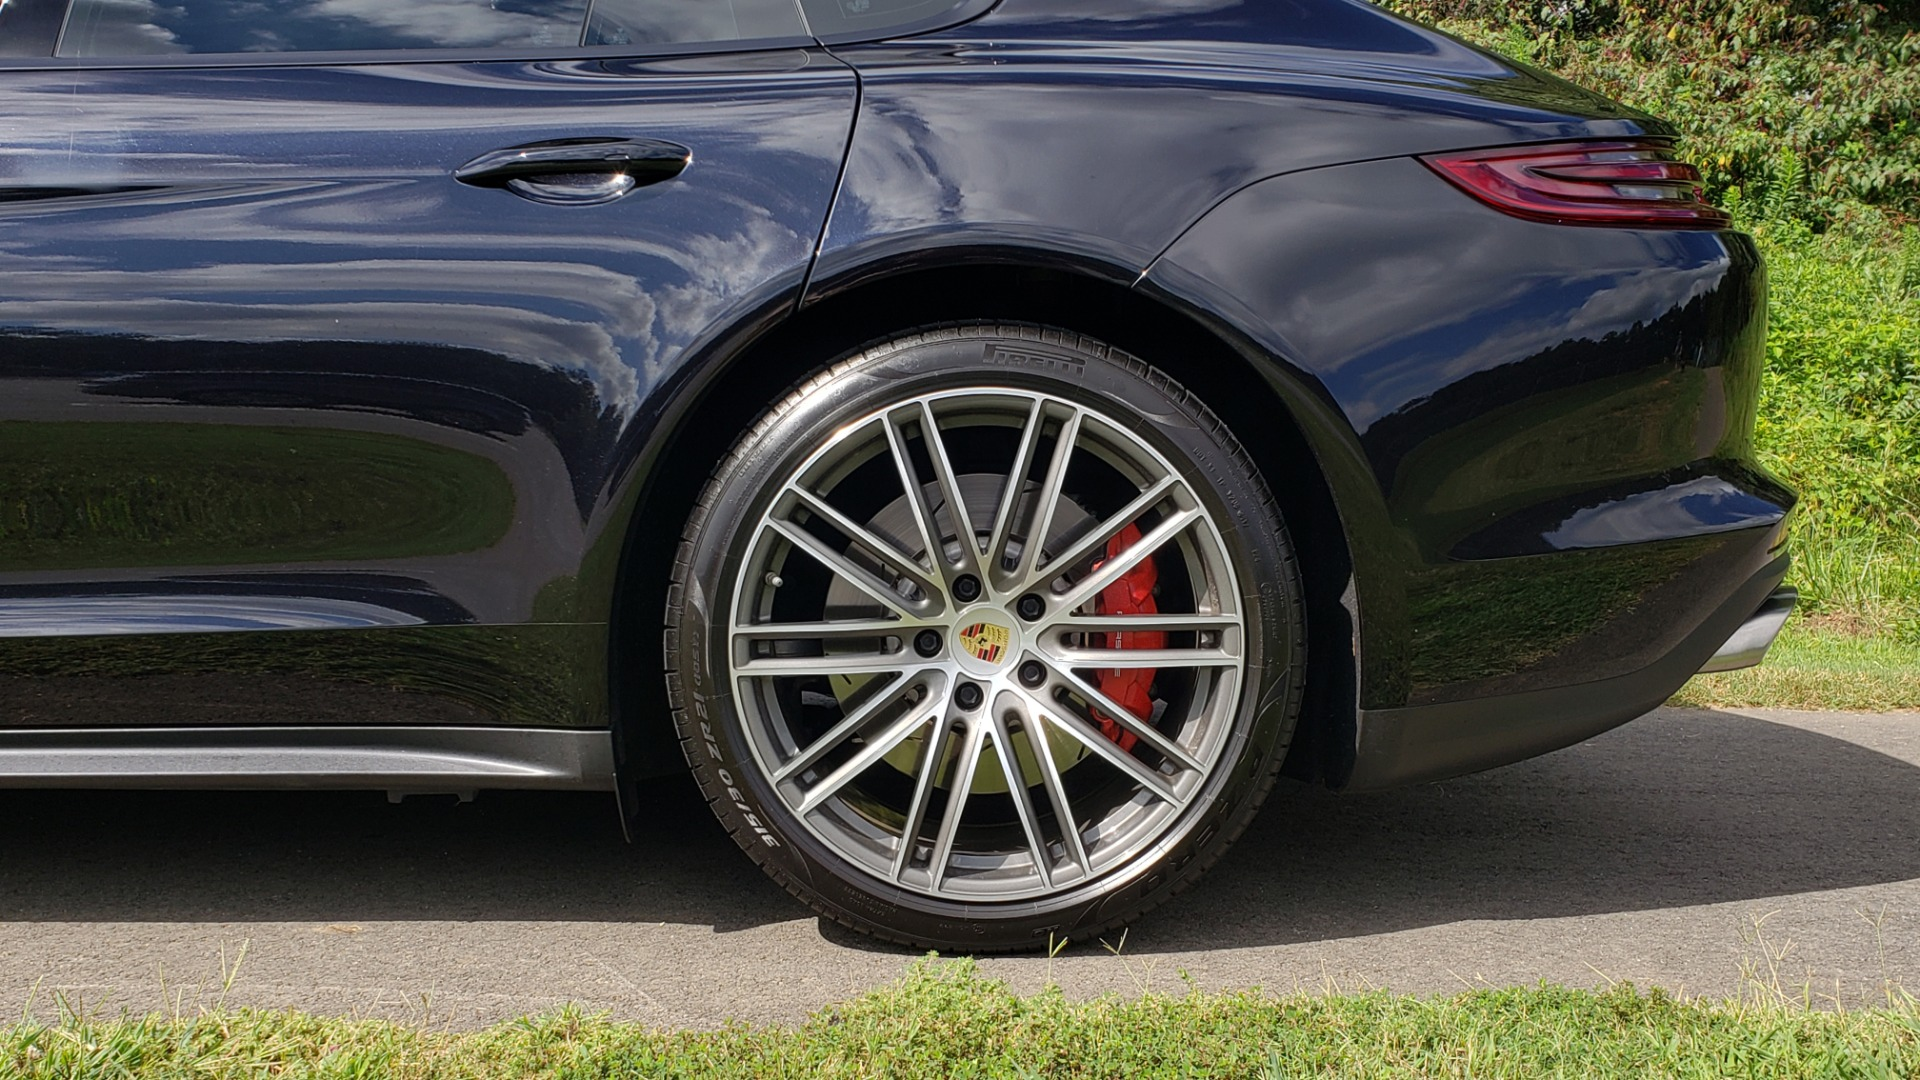 Used 2017 Porsche PANAMERA TURBO AWD / 4.0L V8 / AUTO / NAV / BOSE / REARVIEW / 21IN WHEELS for sale $98,995 at Formula Imports in Charlotte NC 28227 85